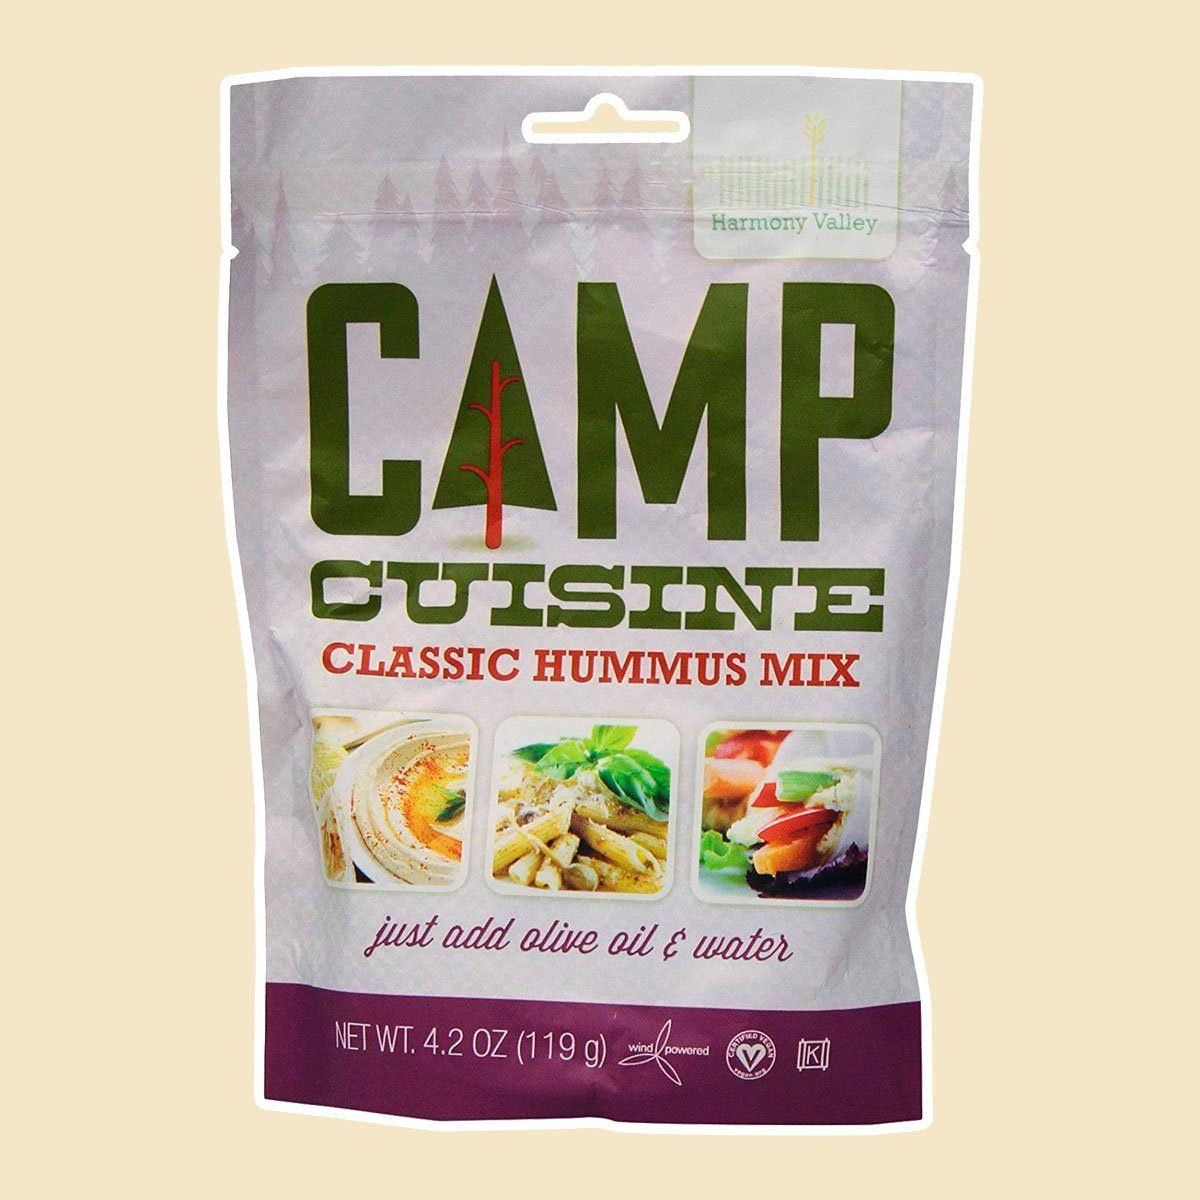 Harmony Valley Camp Cuisine Classic Hummus Mix